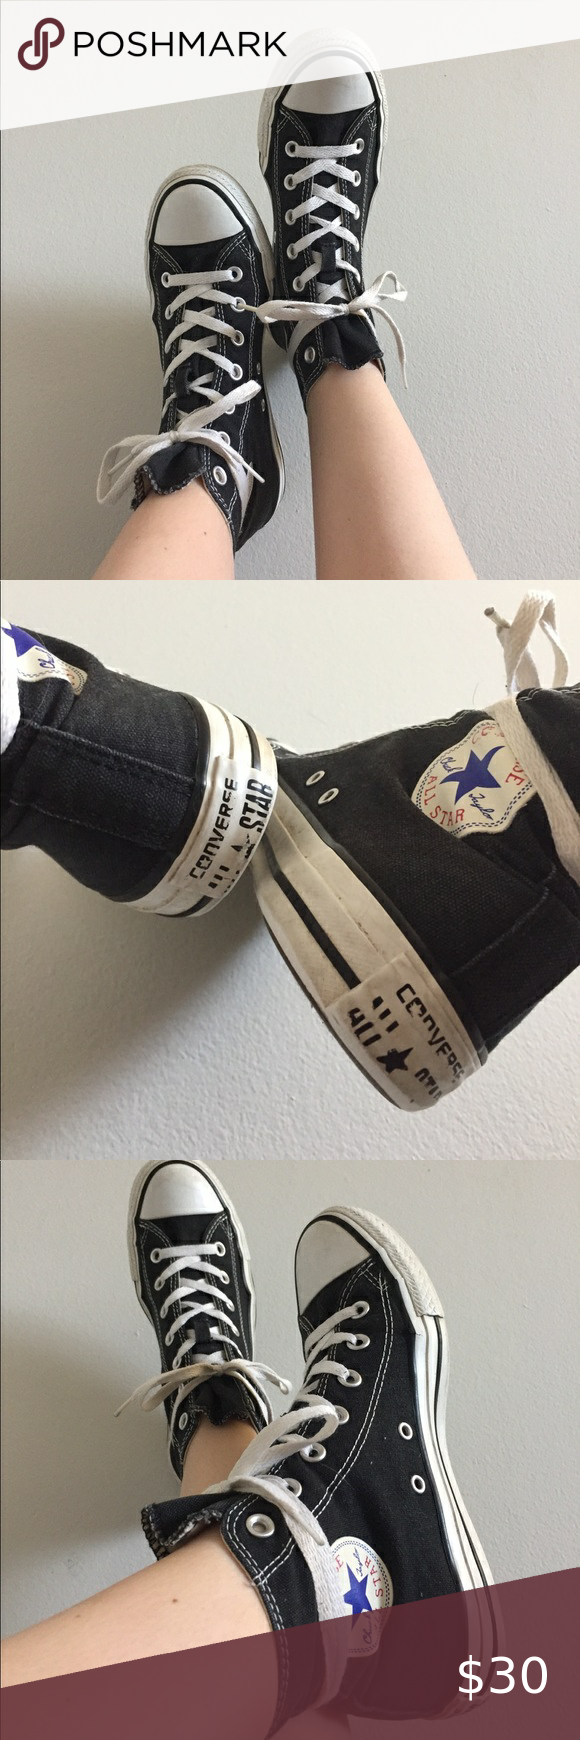 Black Converse High Tops | Size 8 in